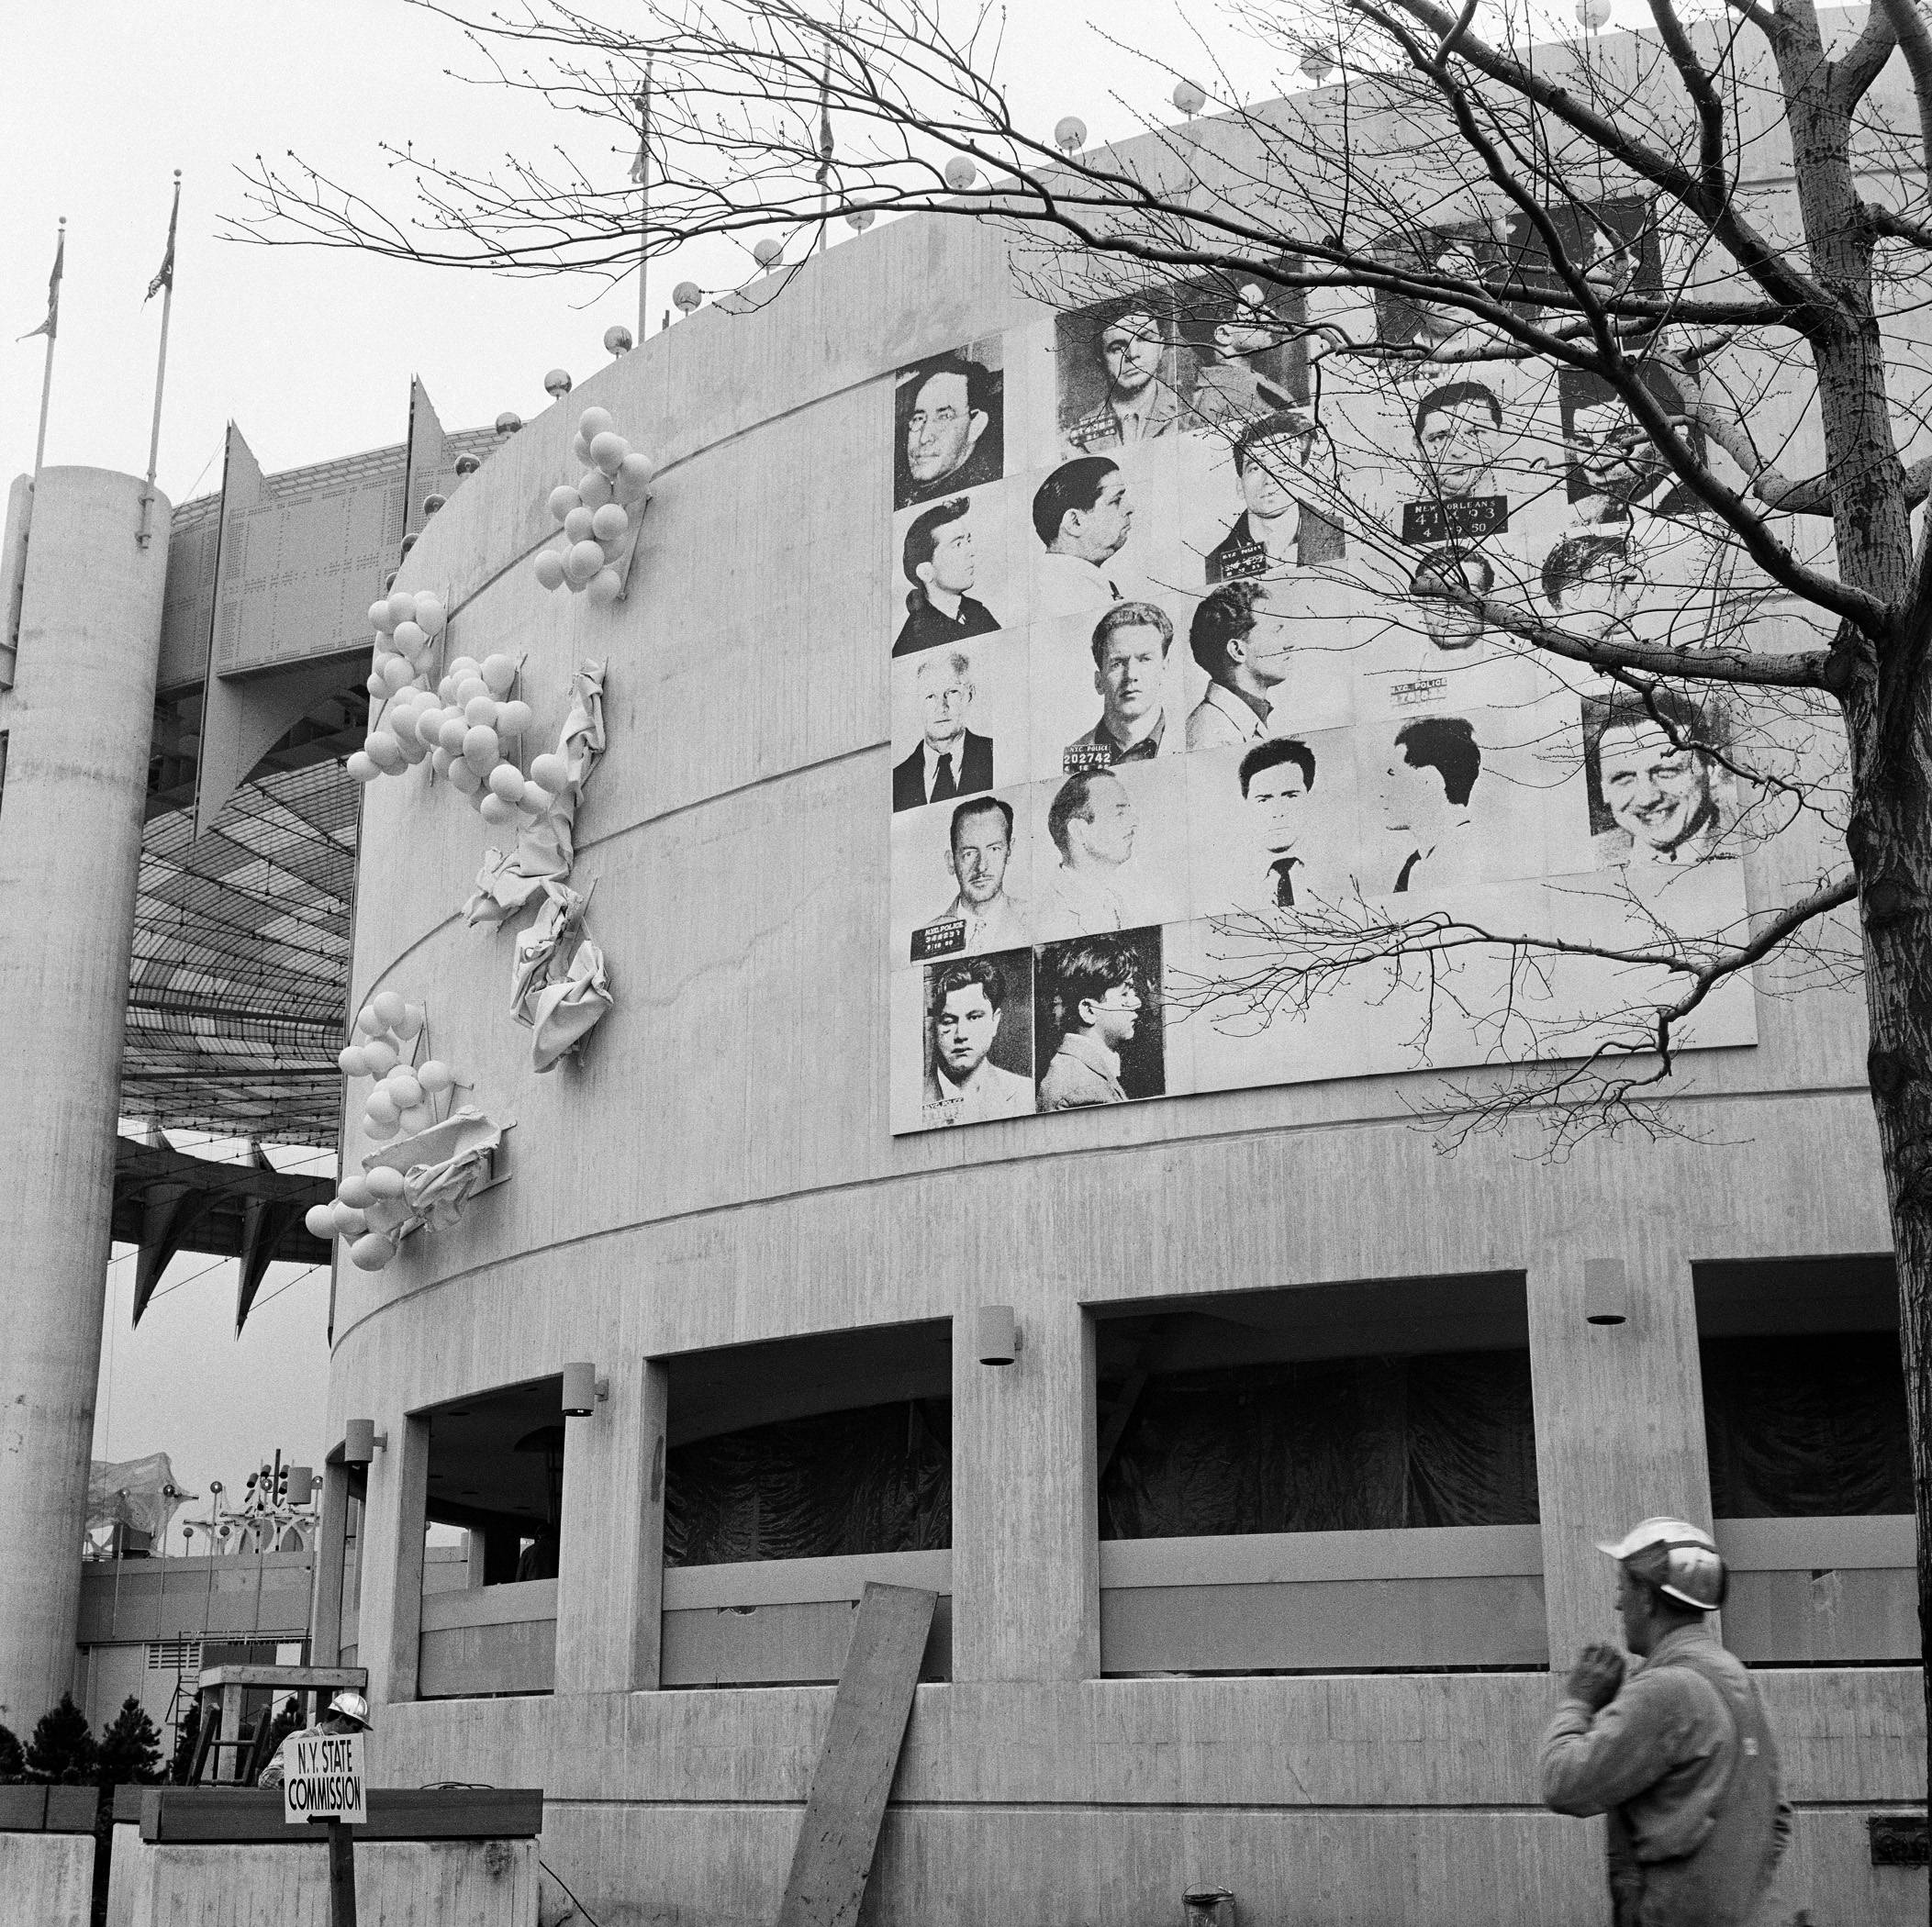 A 20x20 foot mural depicting mug shots of the NYPD's 13 most-wanted criminals by Andy Warhol is mounted on the curved facade of the New York State Pavilion at the 1964 New York World's Fair in the Queens borough of New York. T